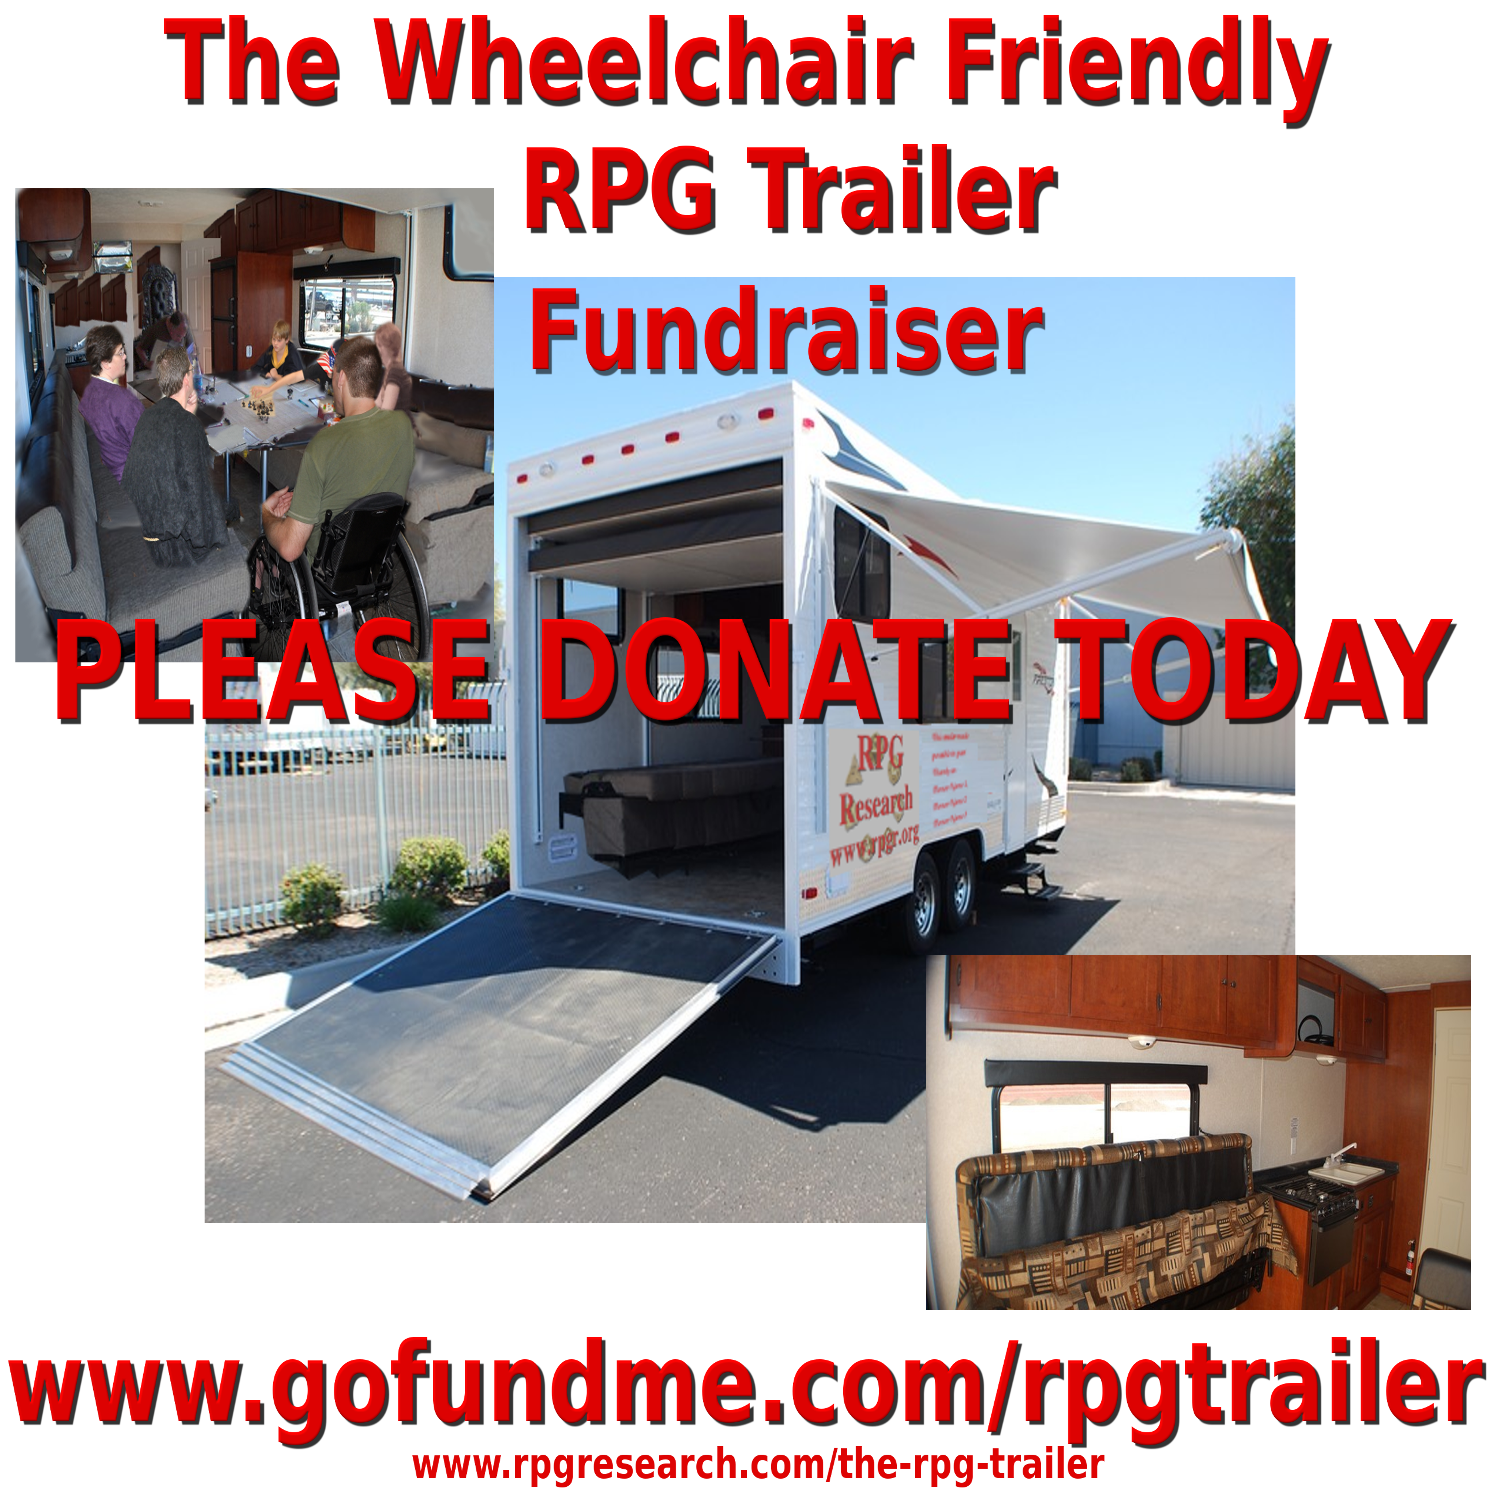 All Music Sales Income Going Toward Building Wheelchair Friendly RPG Trailer